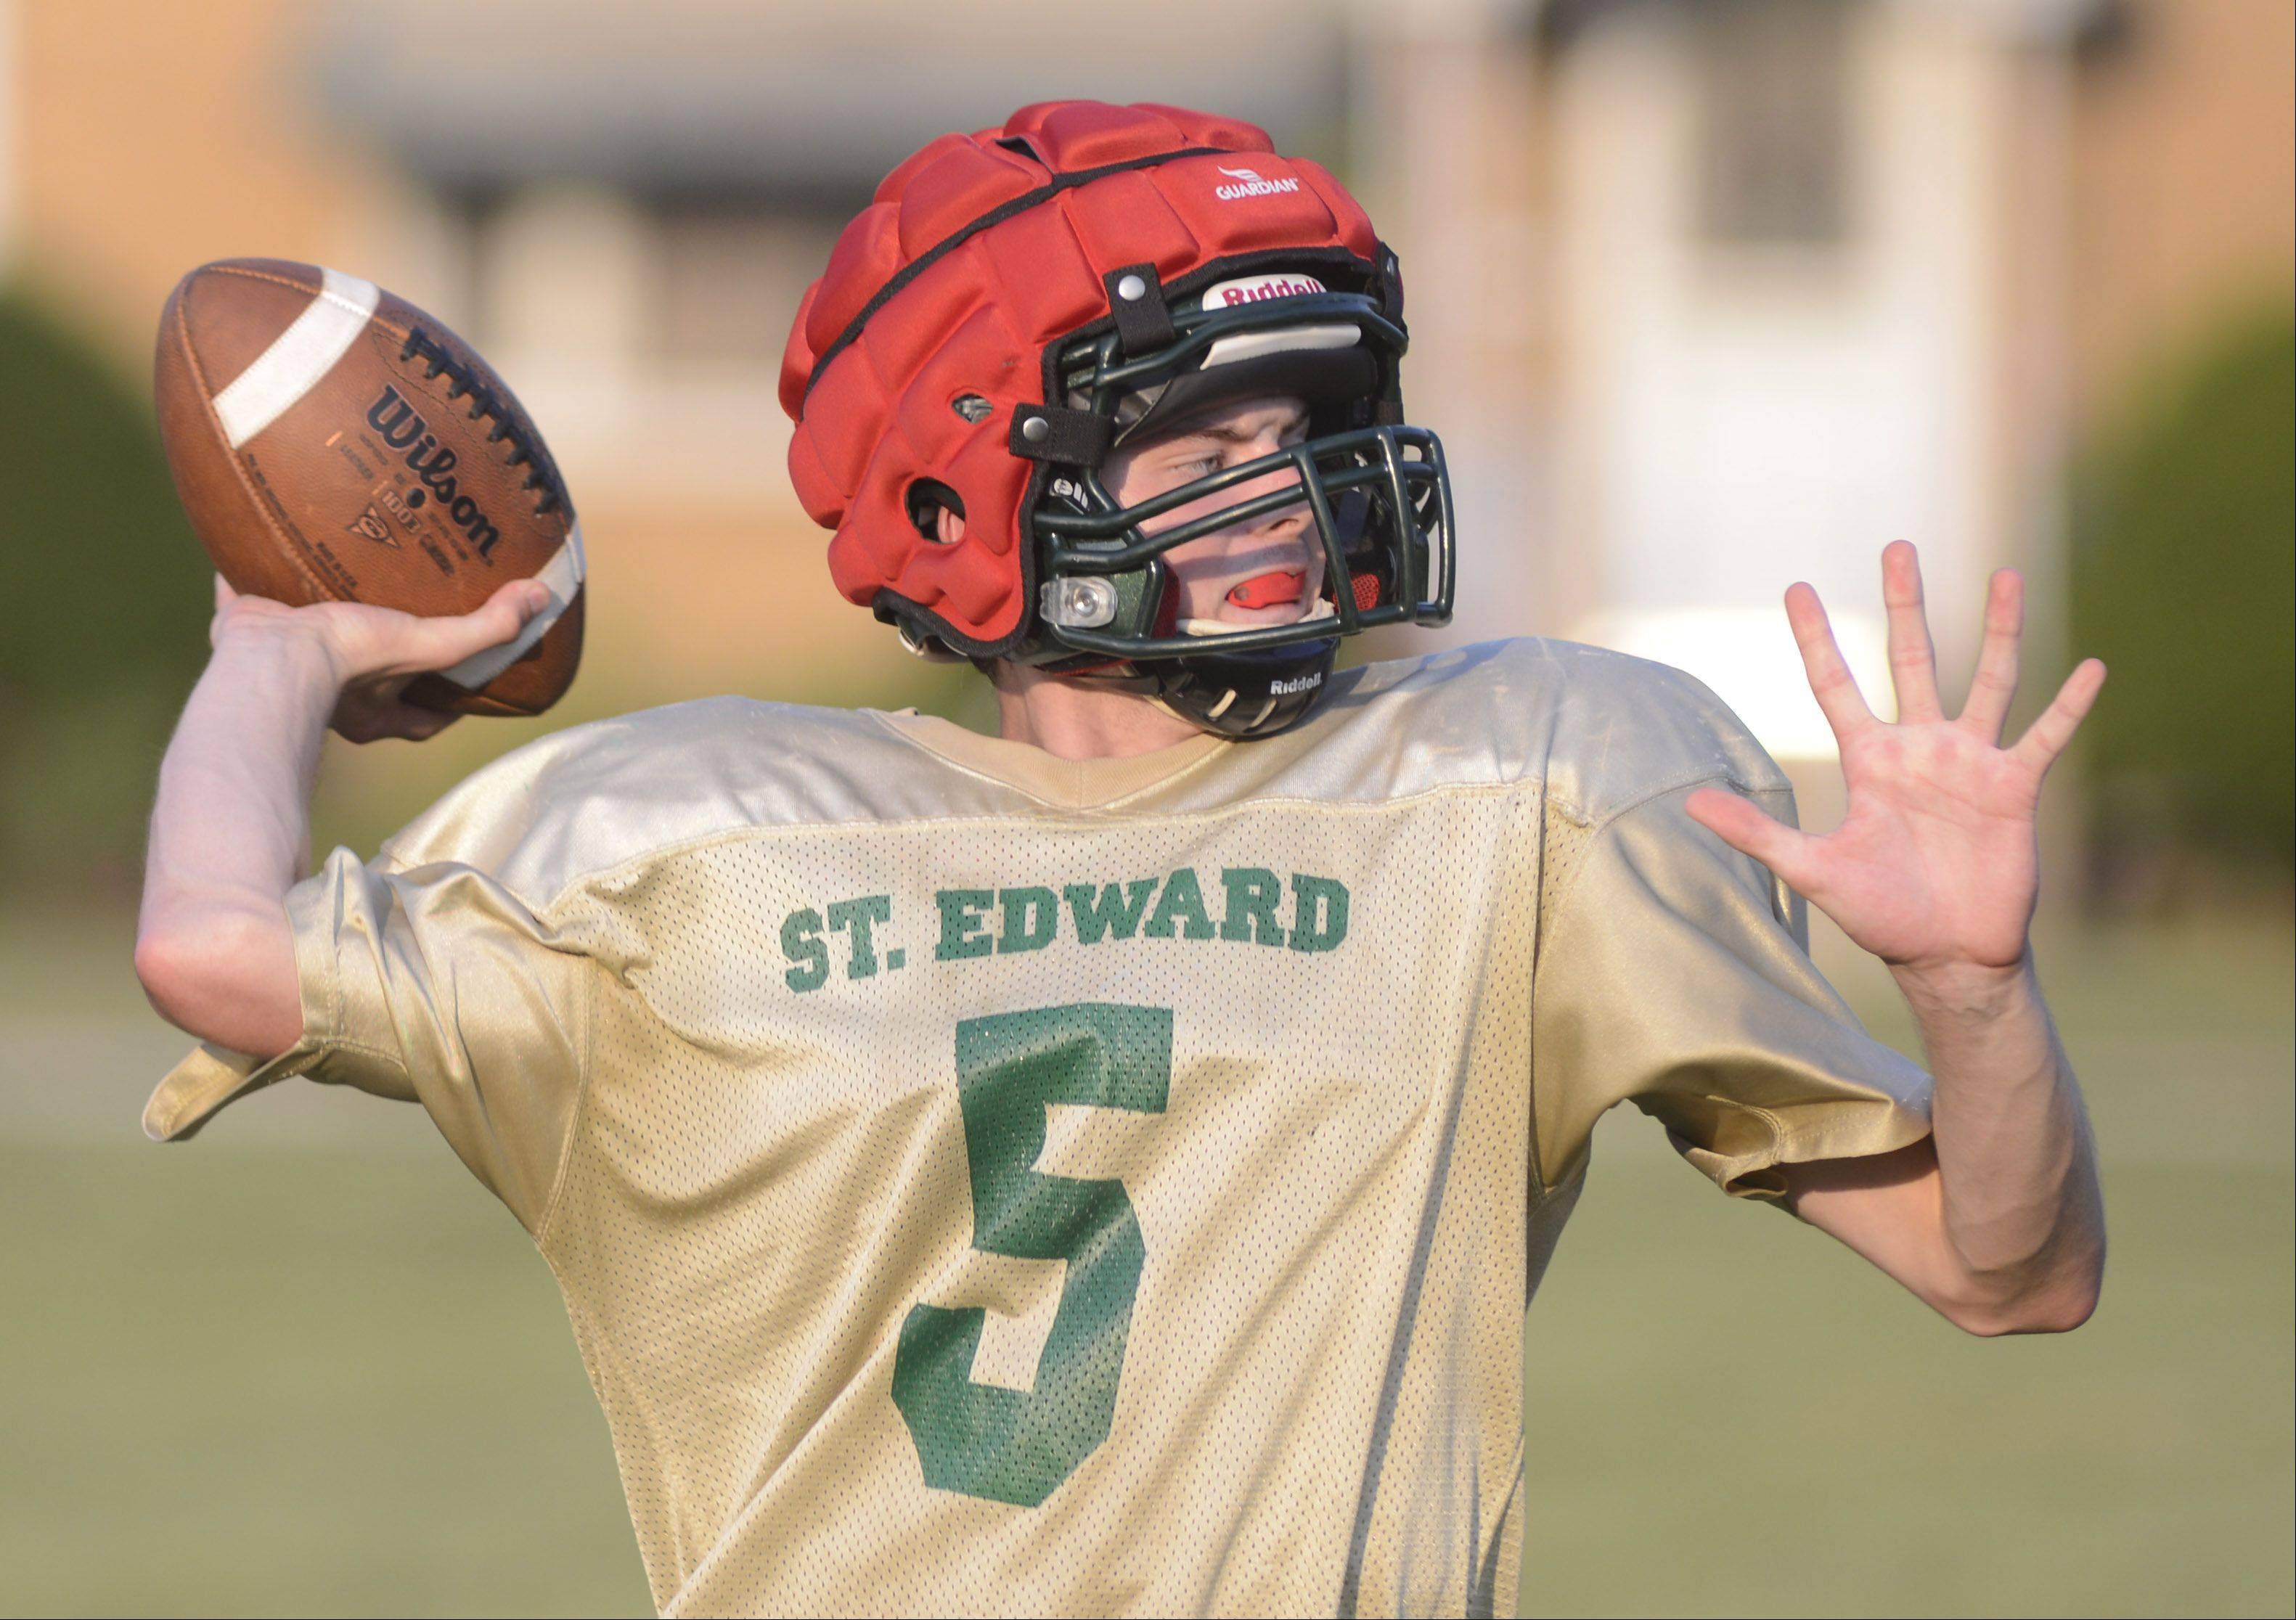 St. Edward quarterback Bryan O�Neill throws a passes during practice.